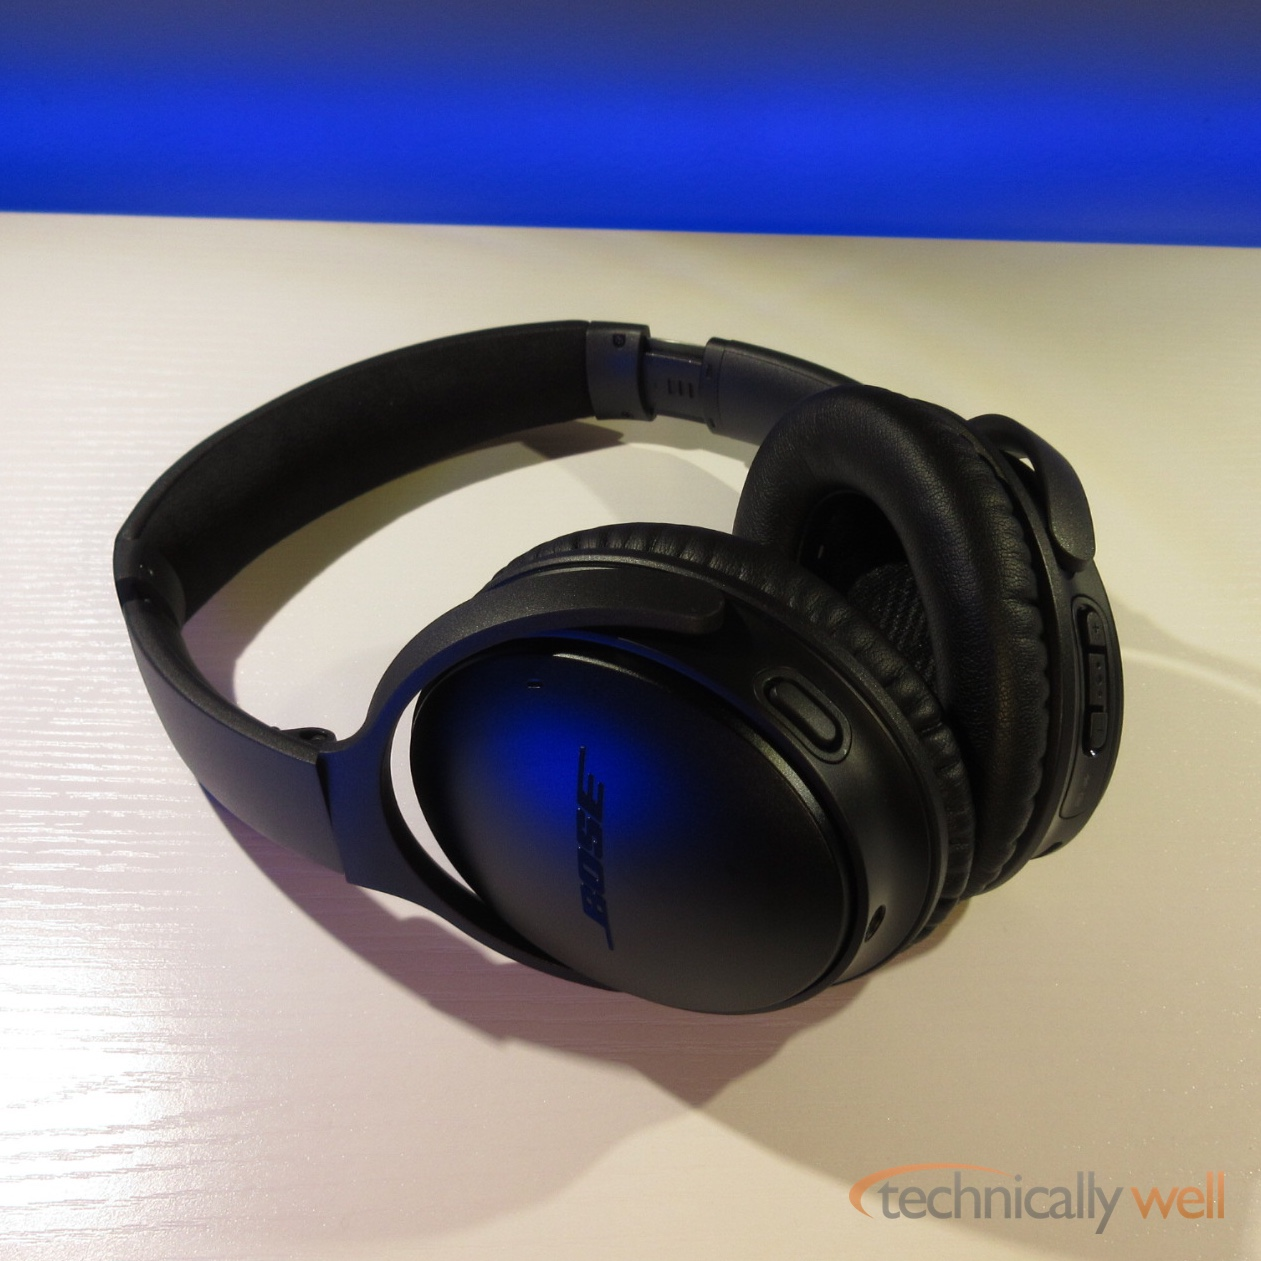 bose 35 ii. bose quietcomfort 35 ii headphones (with google assistant) review \u2013 technically well ii e